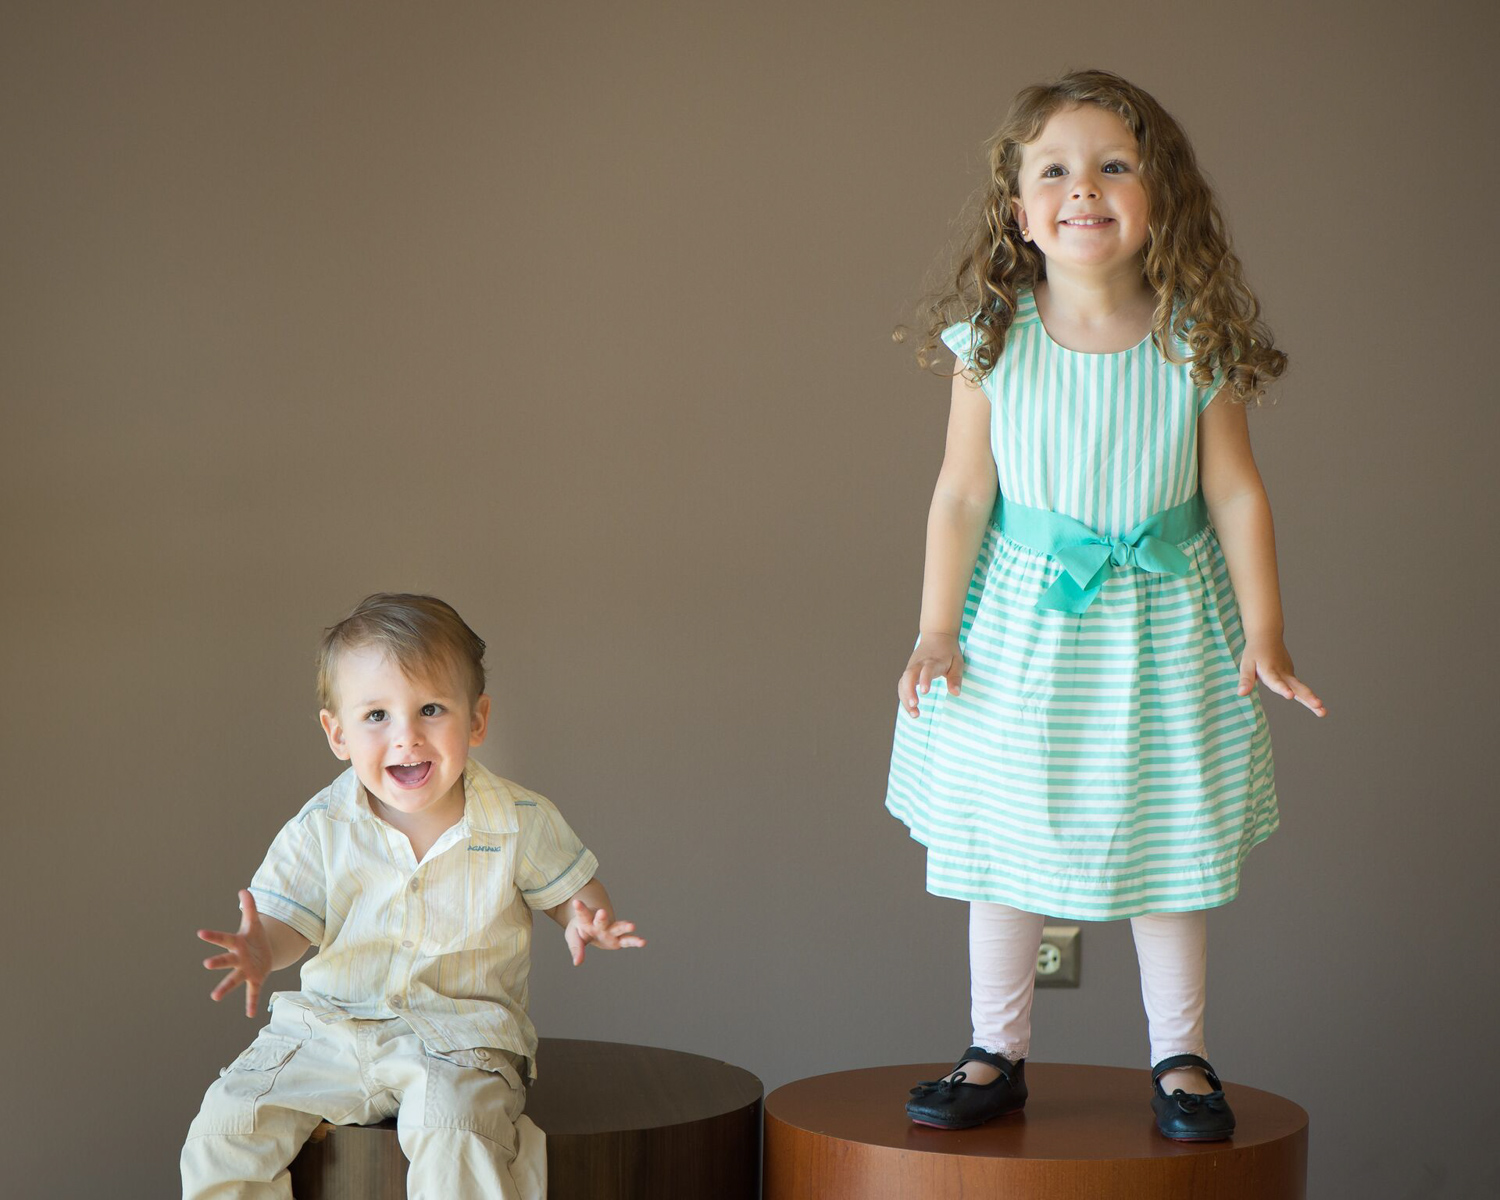 A brother and sister play during a photo shoot at a Chicago photo studio.